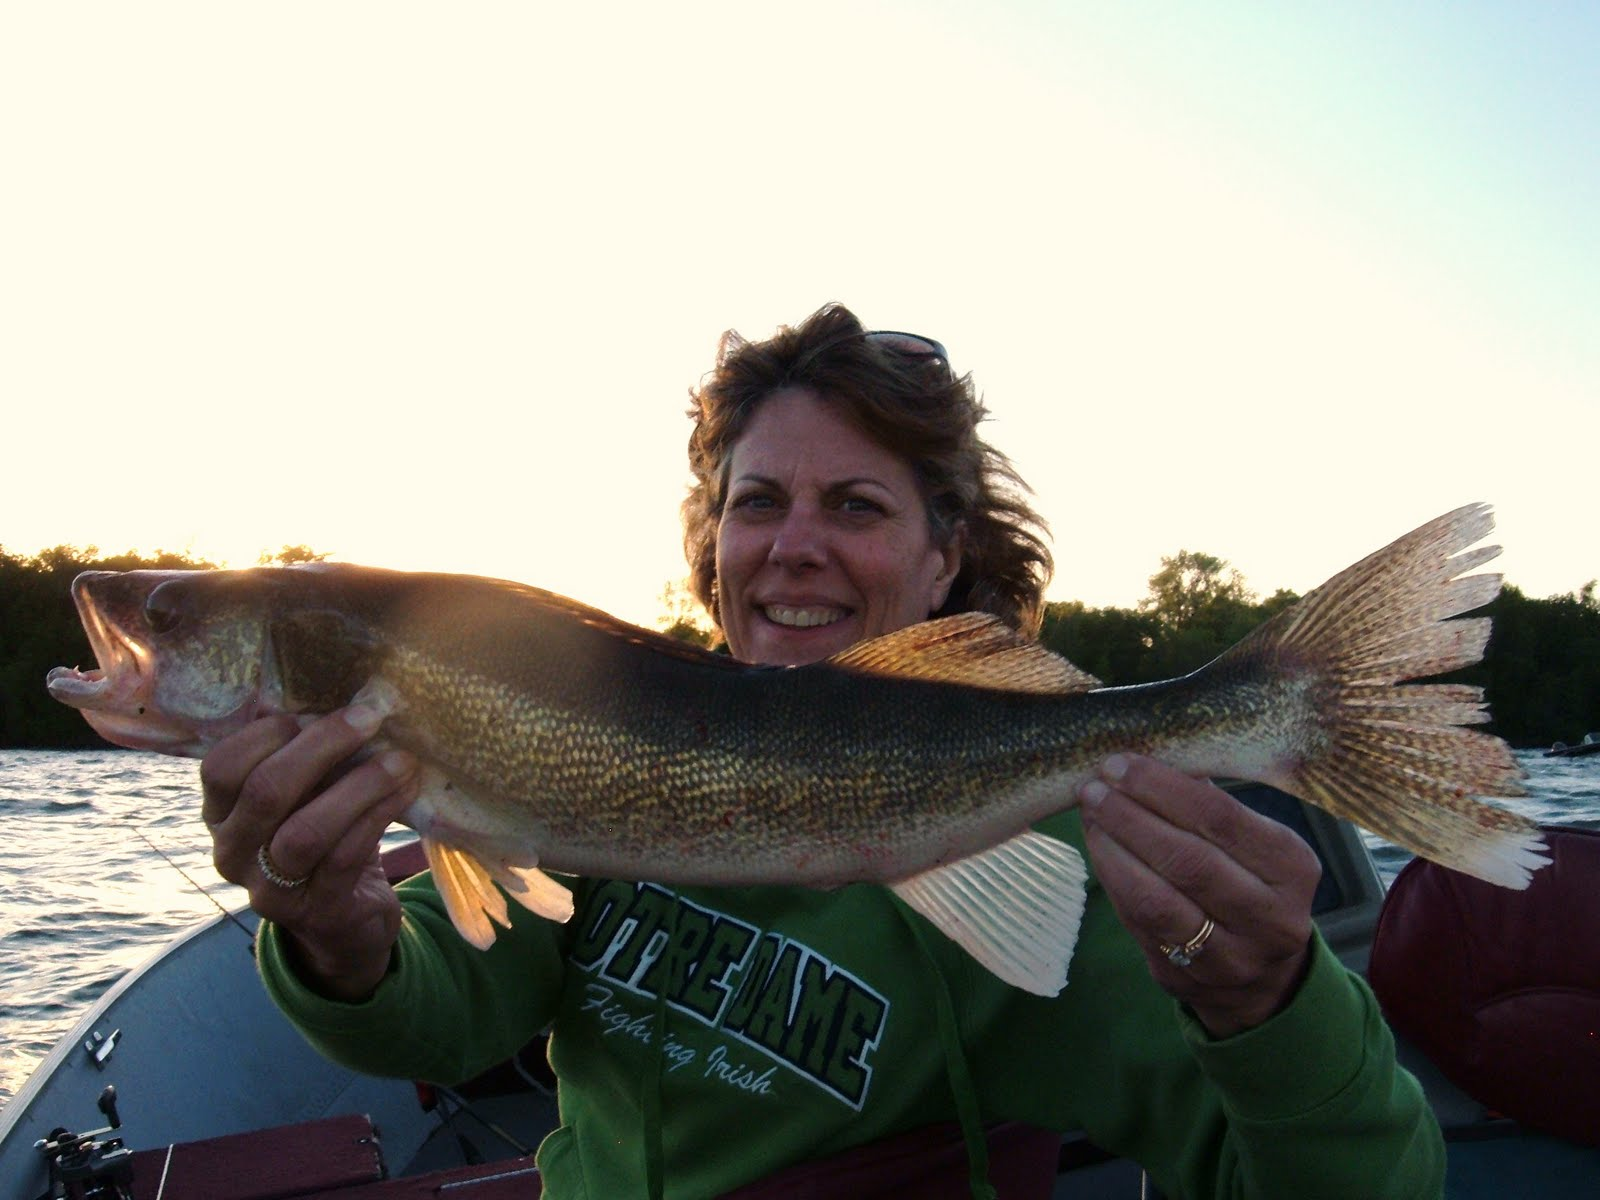 Yellow dog patrol leech lake fishing report late may 2010 for Leech lake fishing report